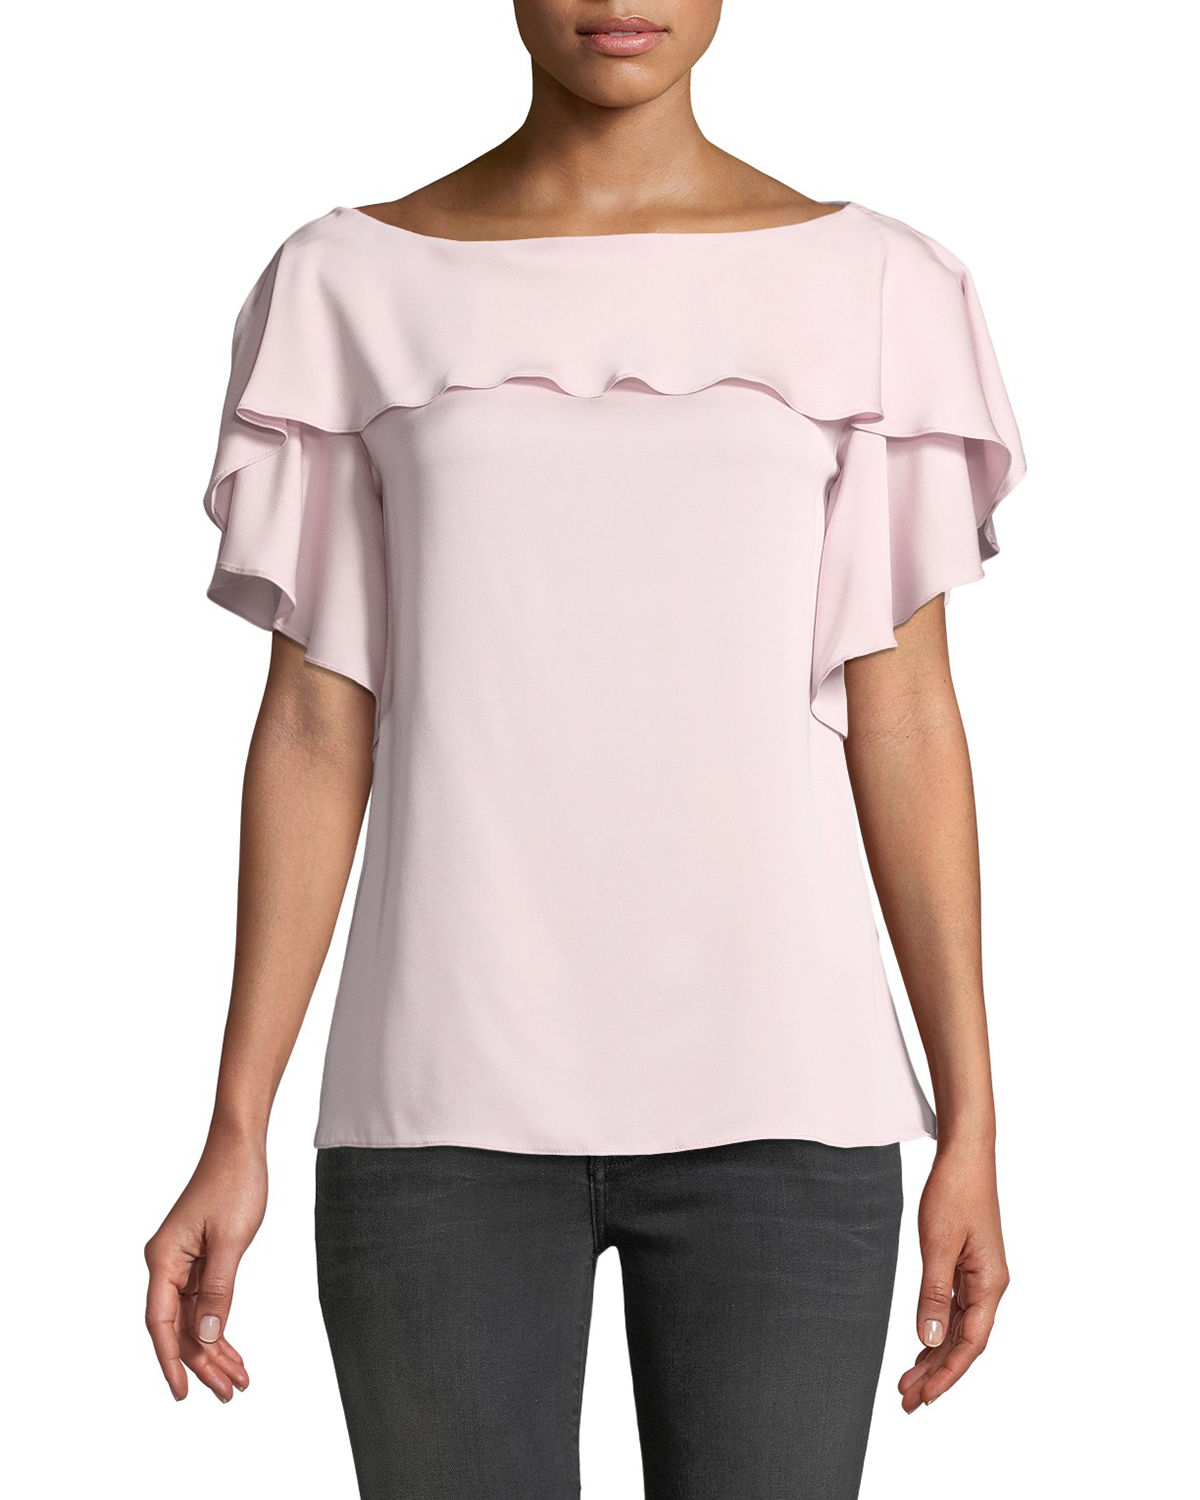 Milly Silk-Blend Top For Sale Cheap Price Outlet Visa Payment Discount Manchester Great Sale MTRUQKHU4